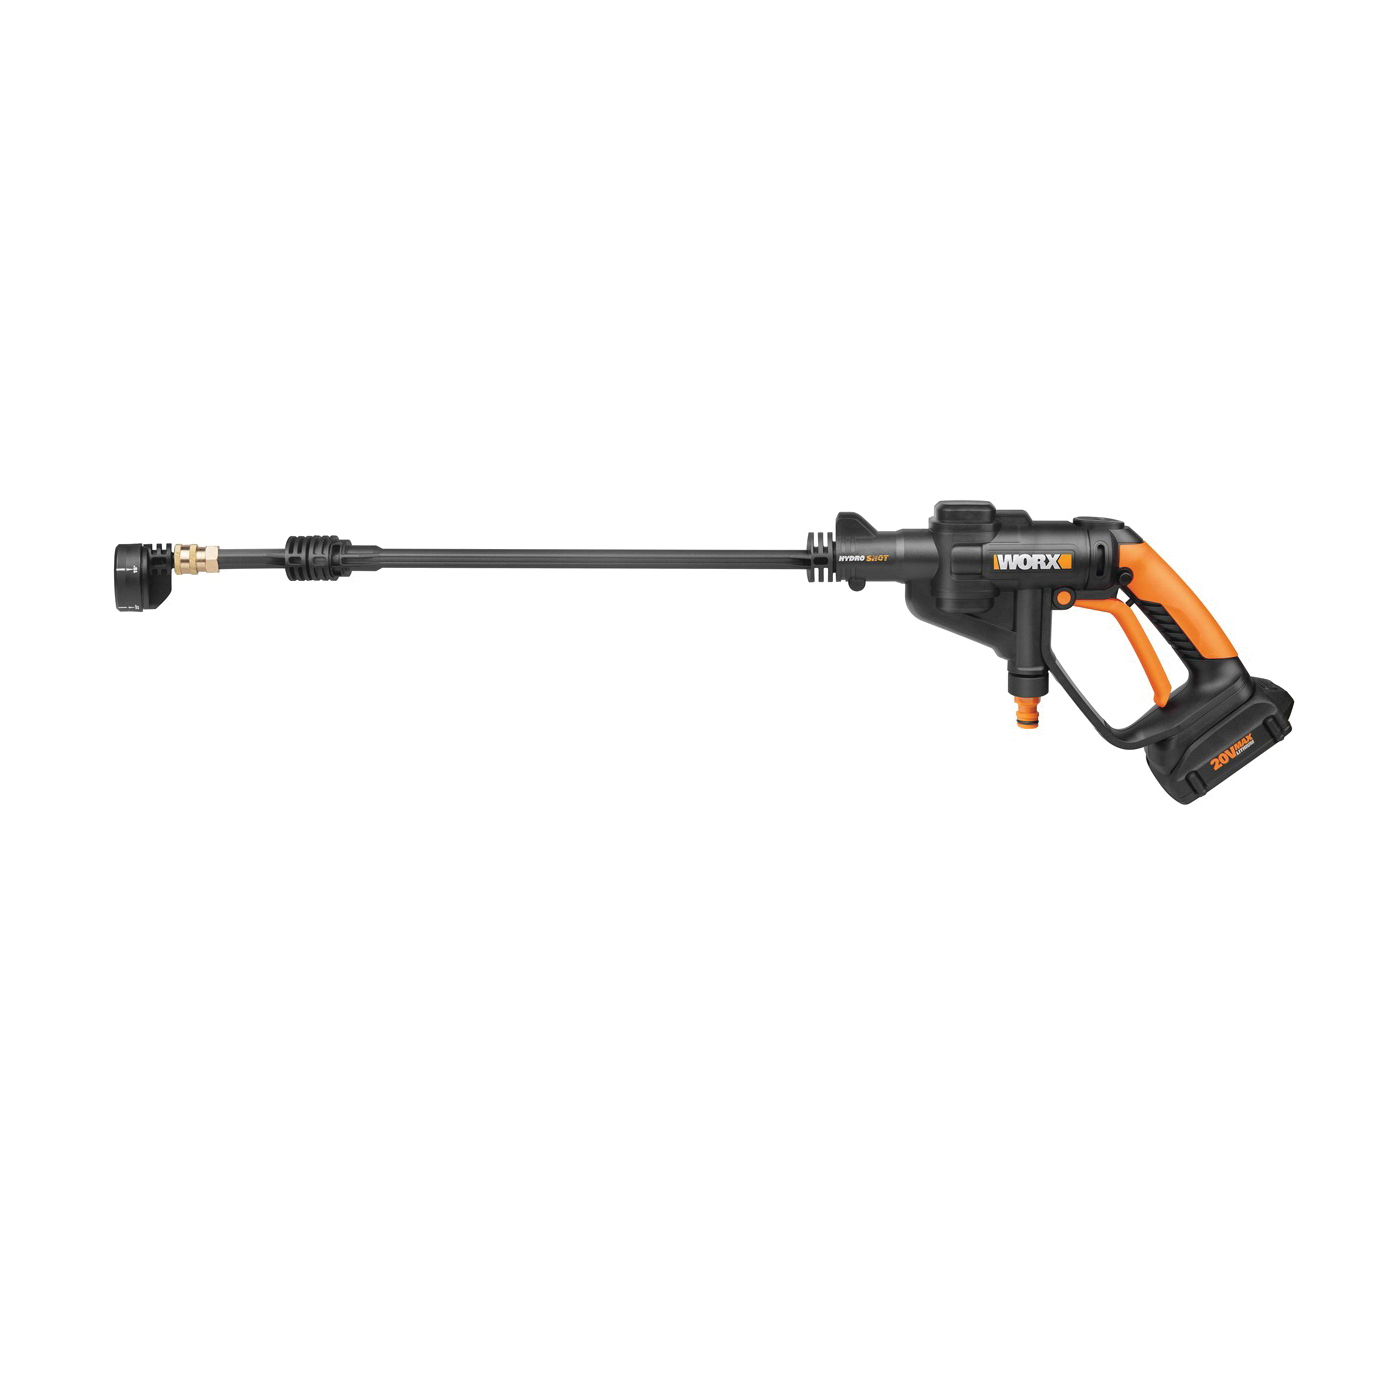 Picture of WORX WG629 Power Cleaner, 20 V Battery, 0.5 gpm, 94/320 psi Pressure